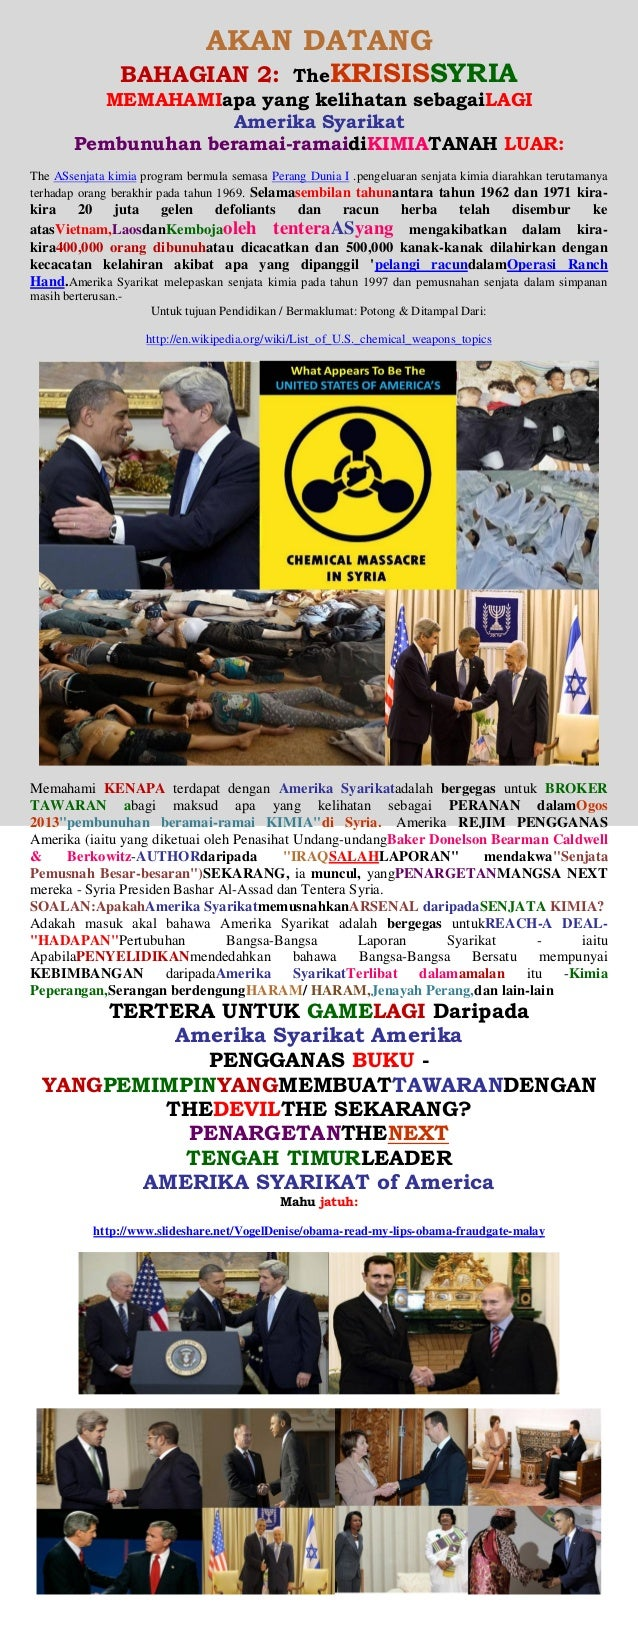 SYRIA CRISIS - (USA) CHEMICAL WEAPONS ATTACK (malay)